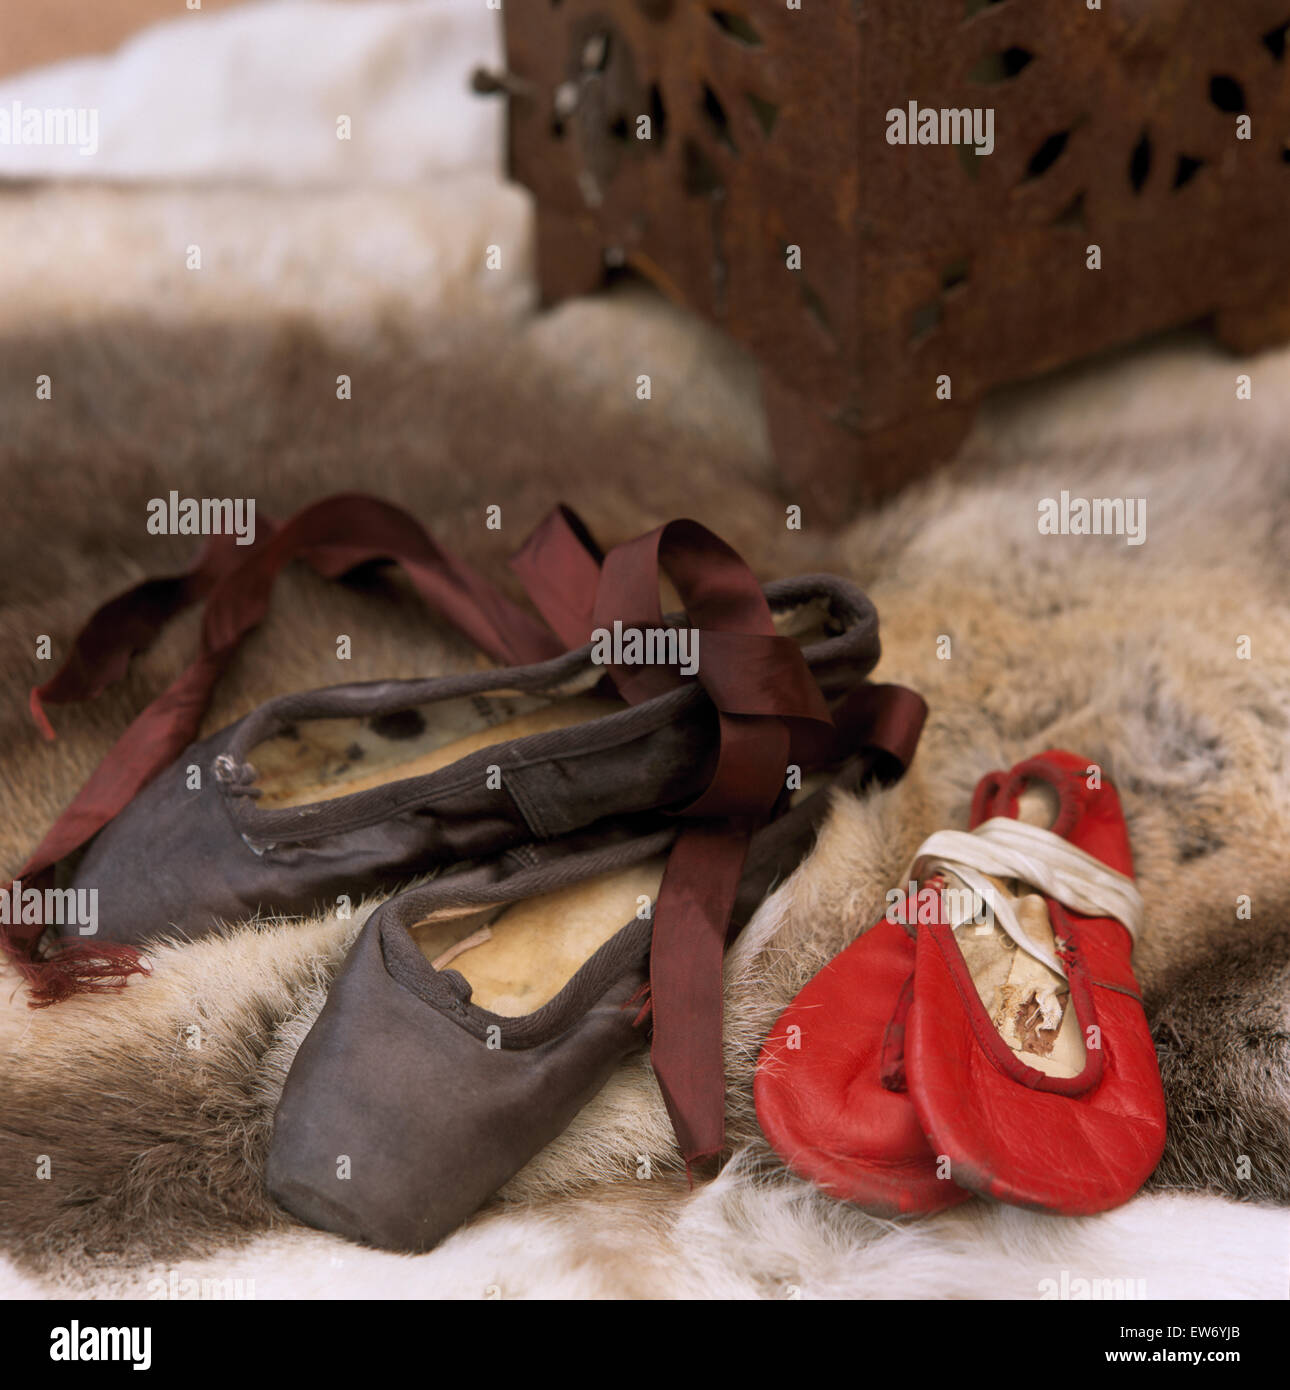 Close-up of pairs of worn ballet shoes - Stock Image